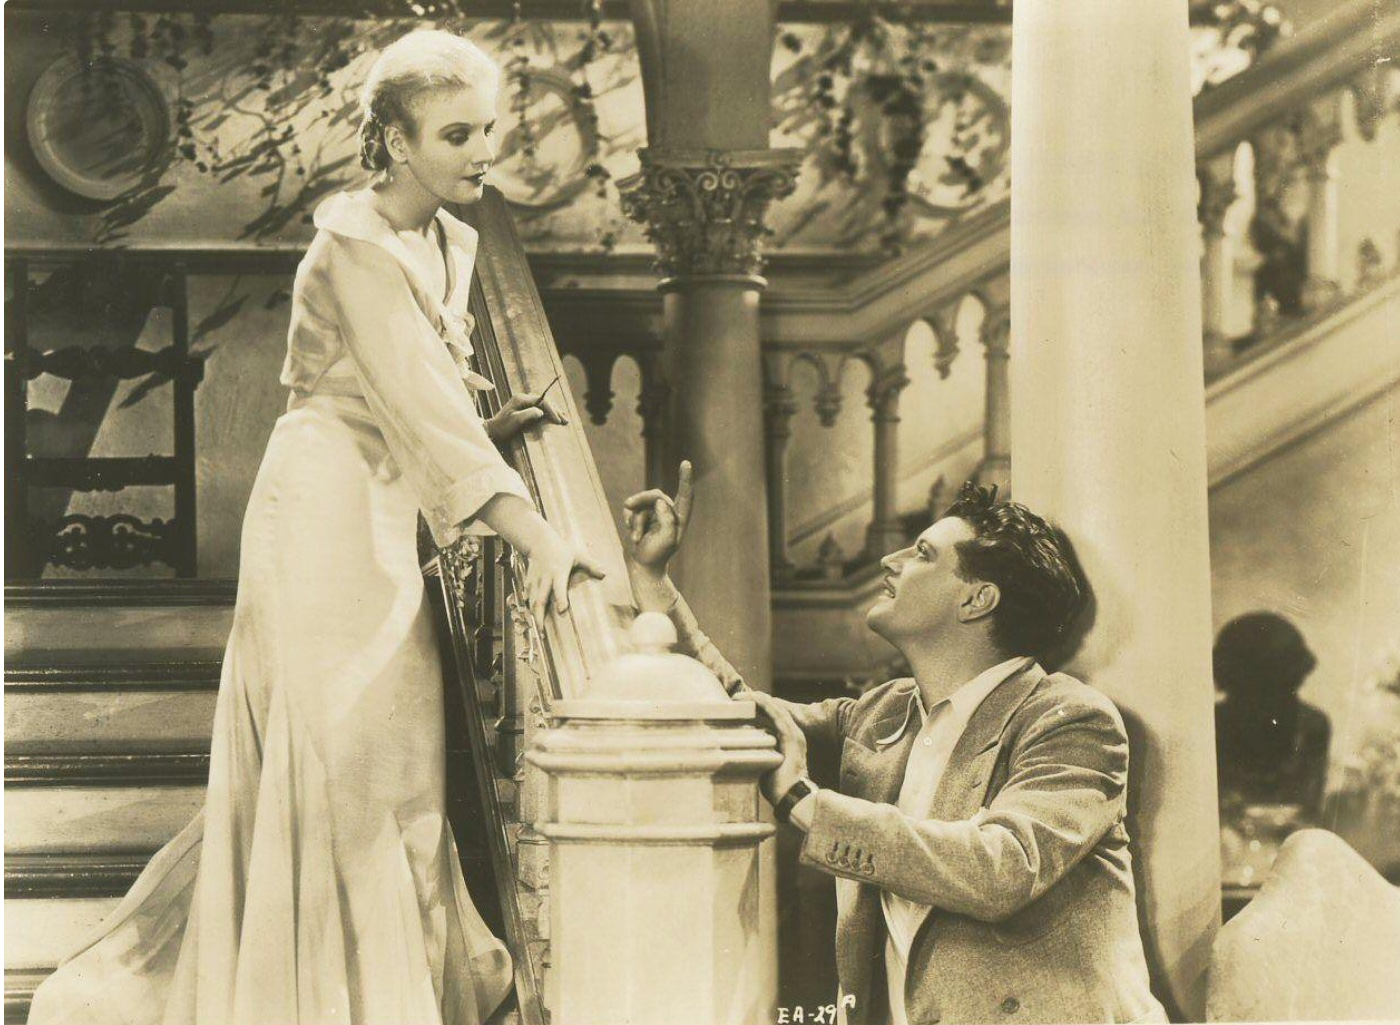 Ralph Forbes and Ann Harding in Enchanted April (1935)